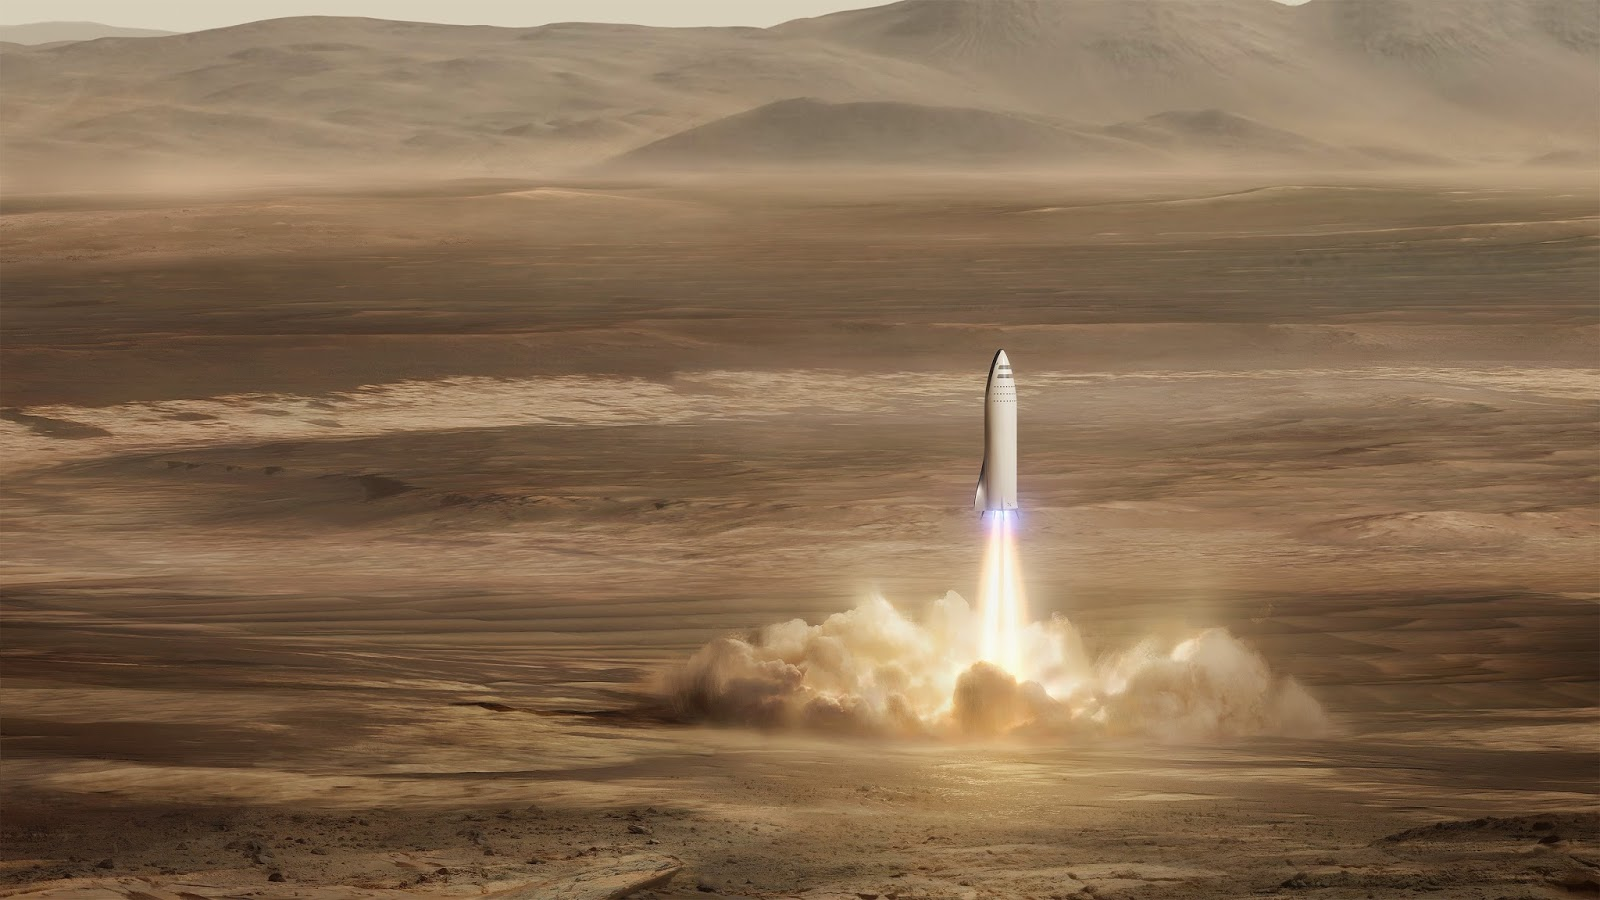 SpaceX BFR spaceship landing on Mars